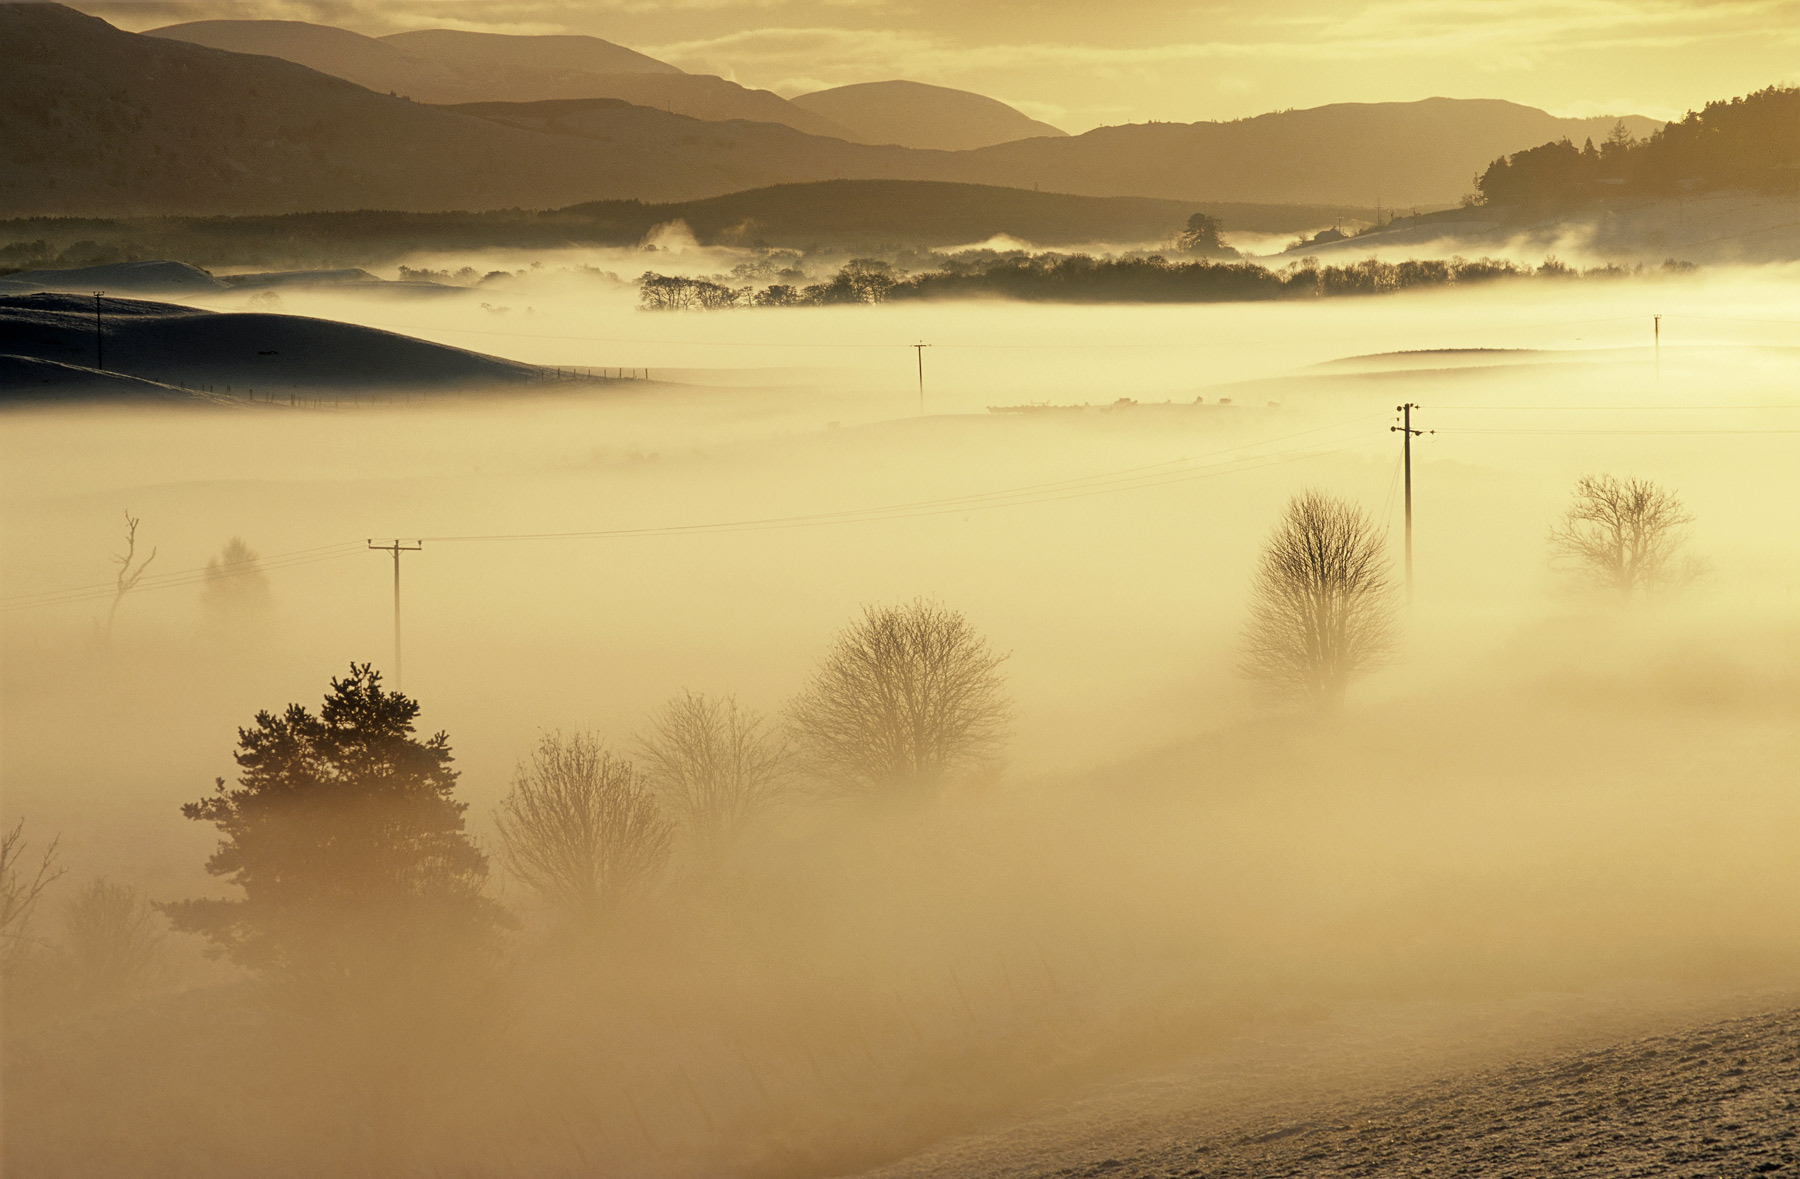 Backlit mist hangs wraith like over the River Spey as it flows down the valley toward the town of Grantown-On-Spey. As...